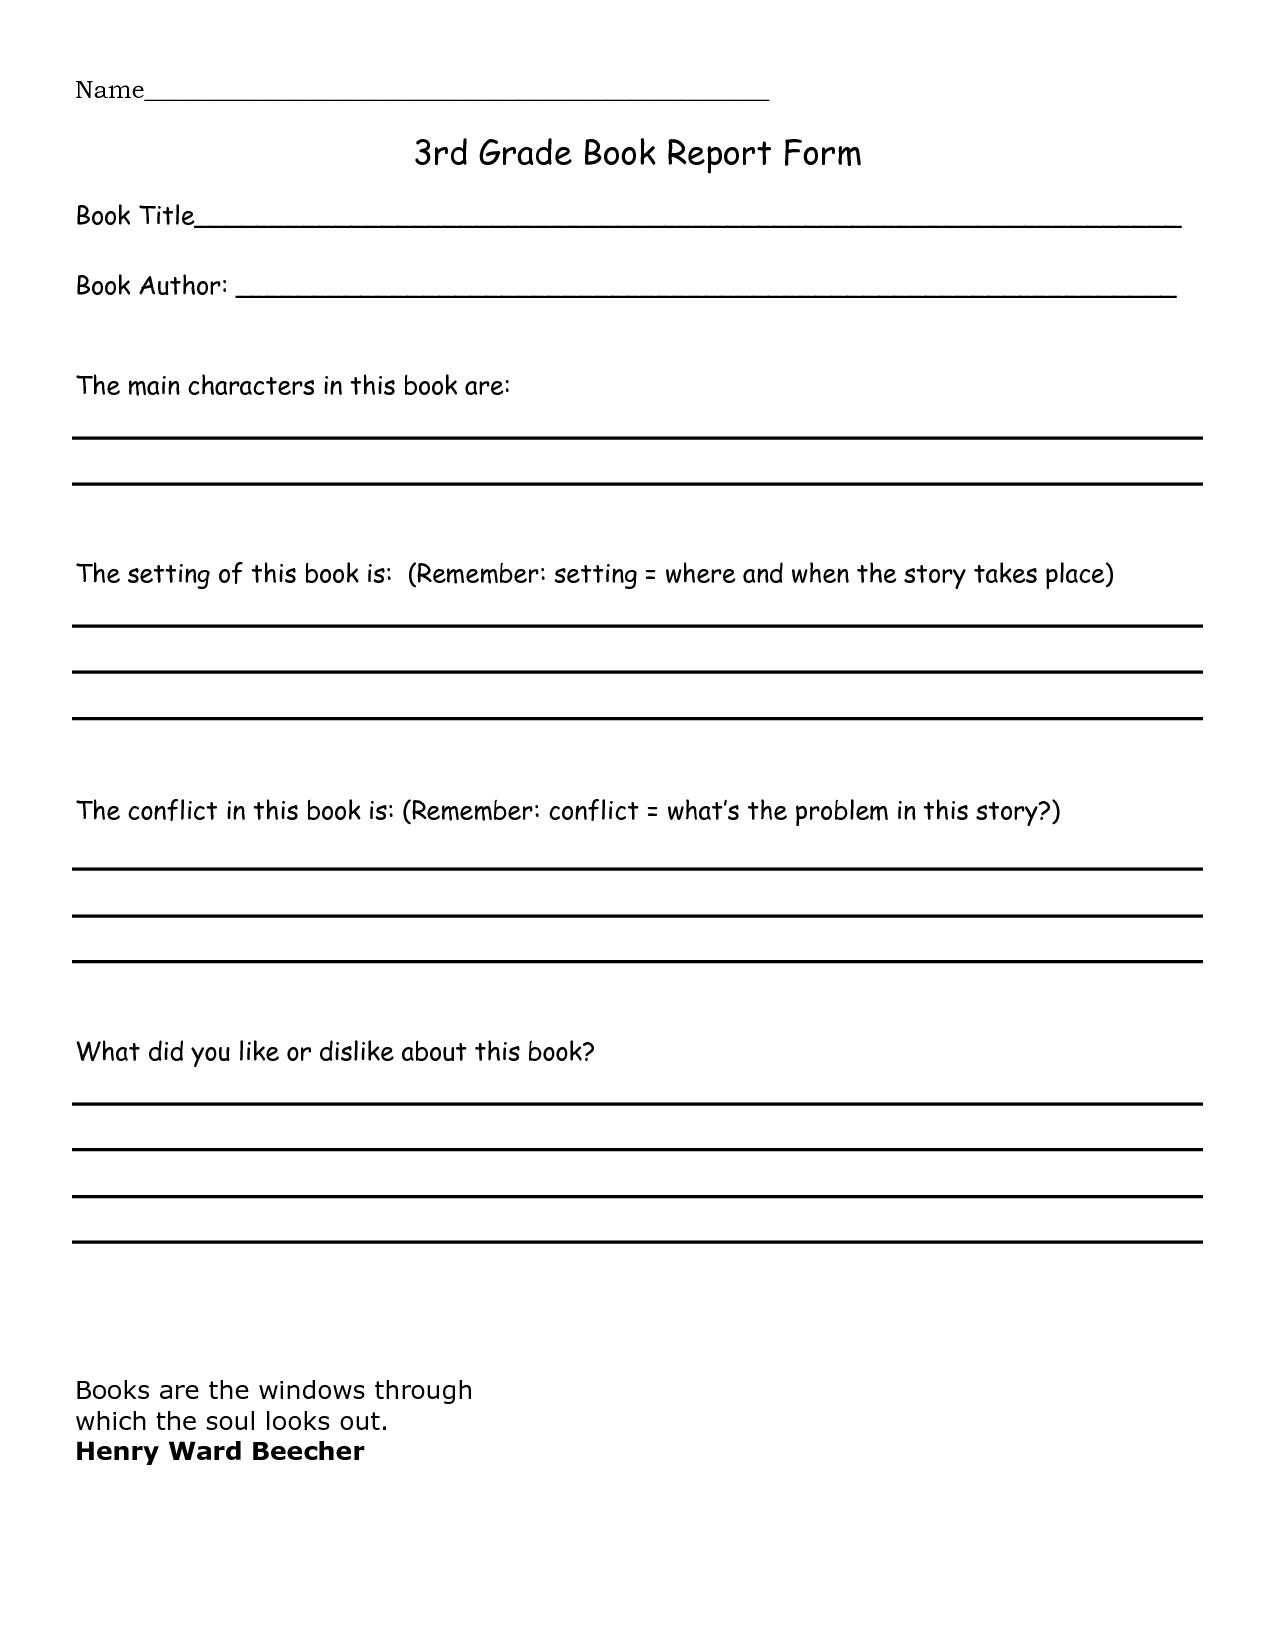 3rd grade book report sample Google Search – Sample Book Summary Template